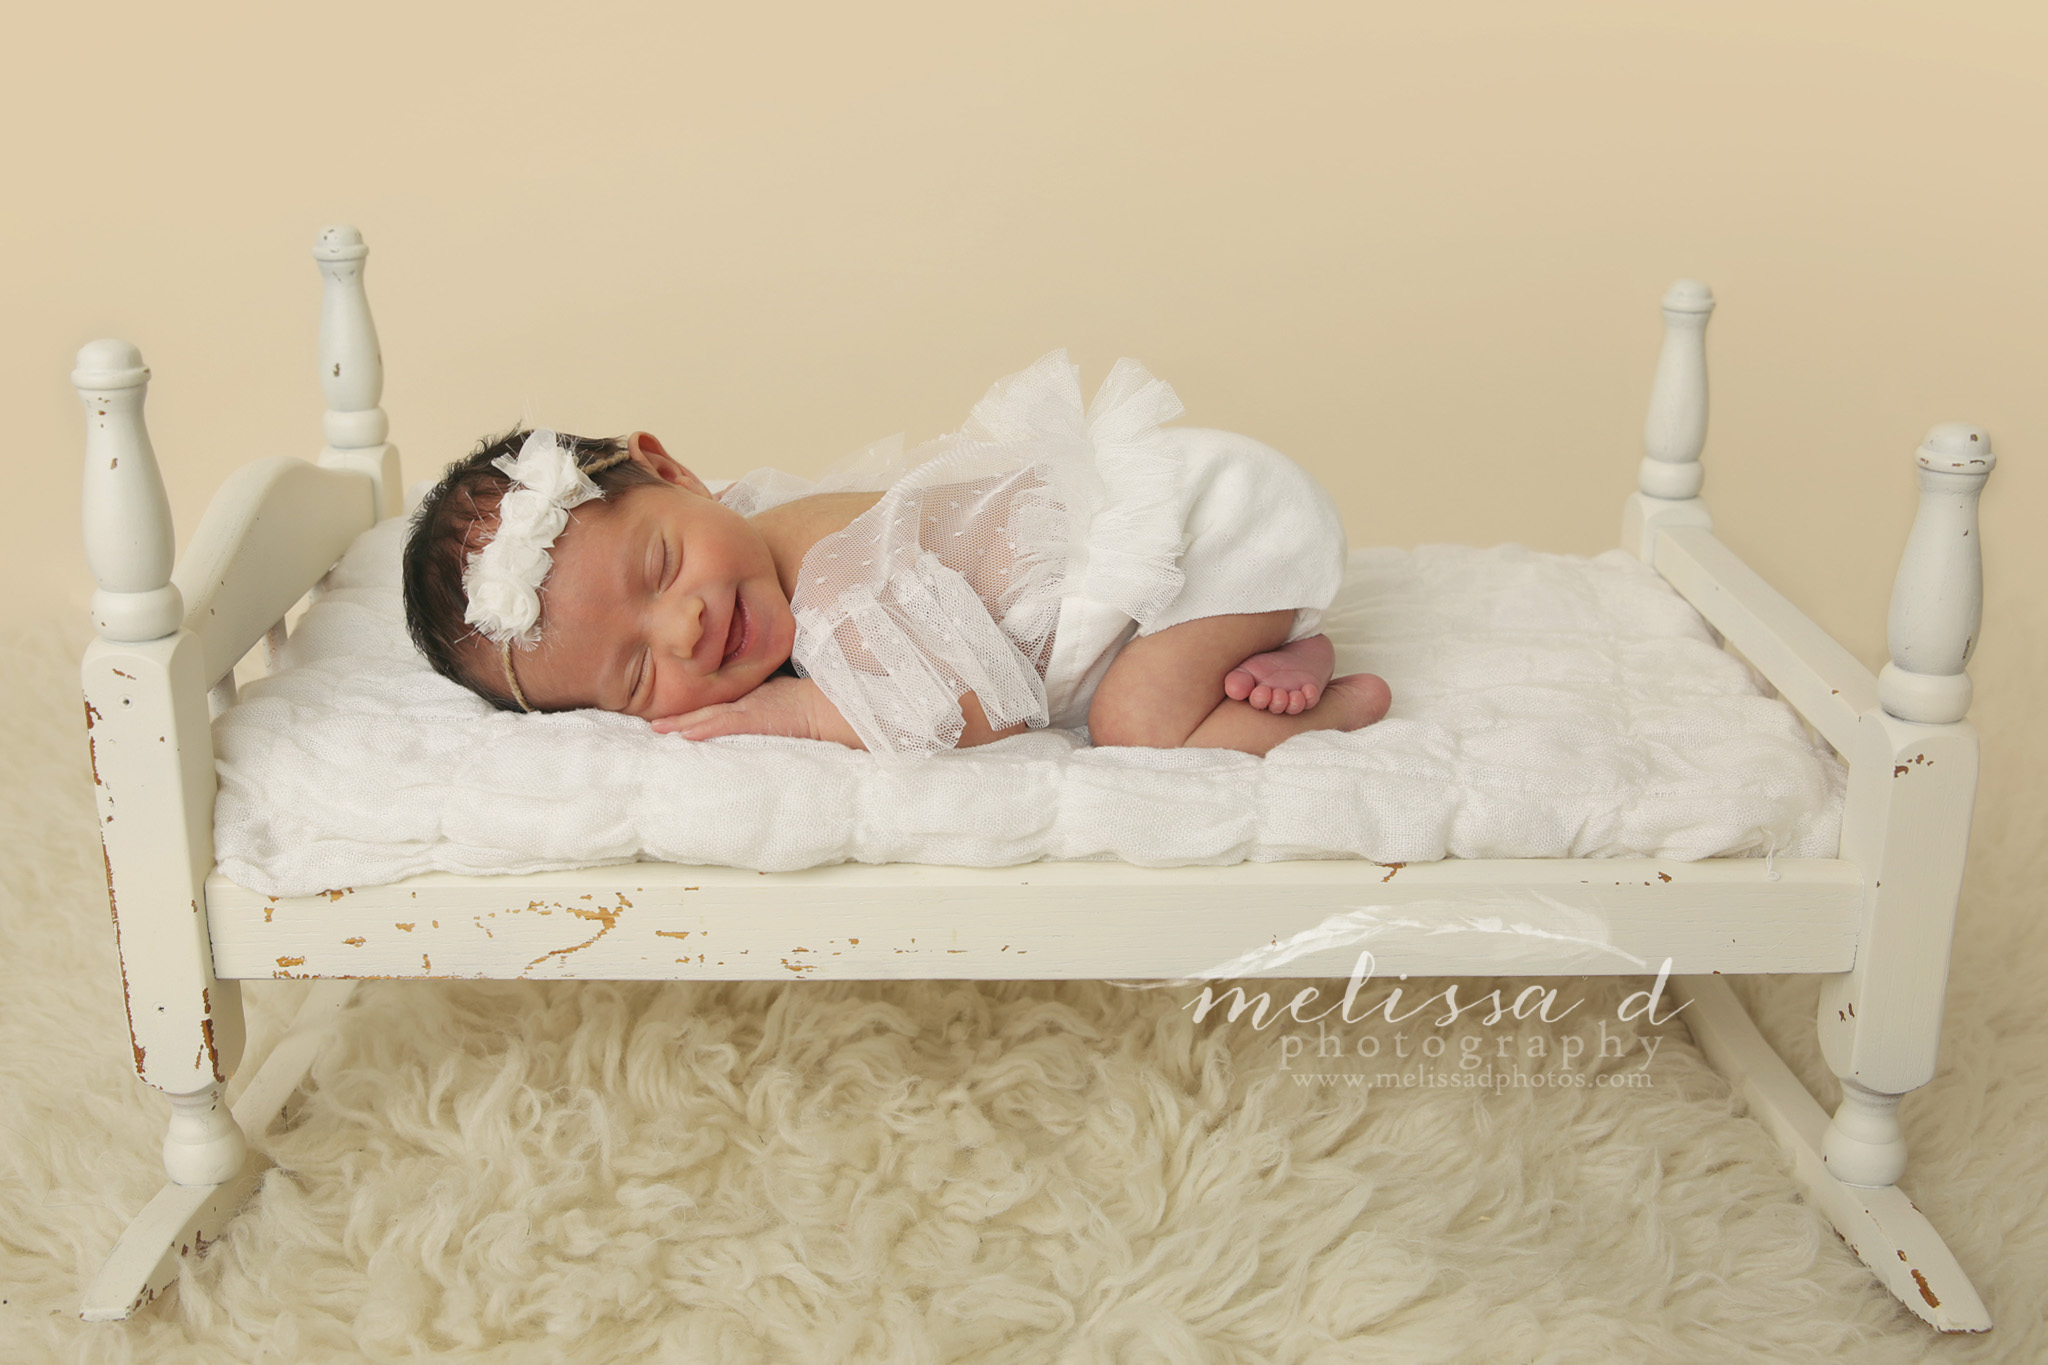 DFW Newborn Photographer bed prop lace outfit